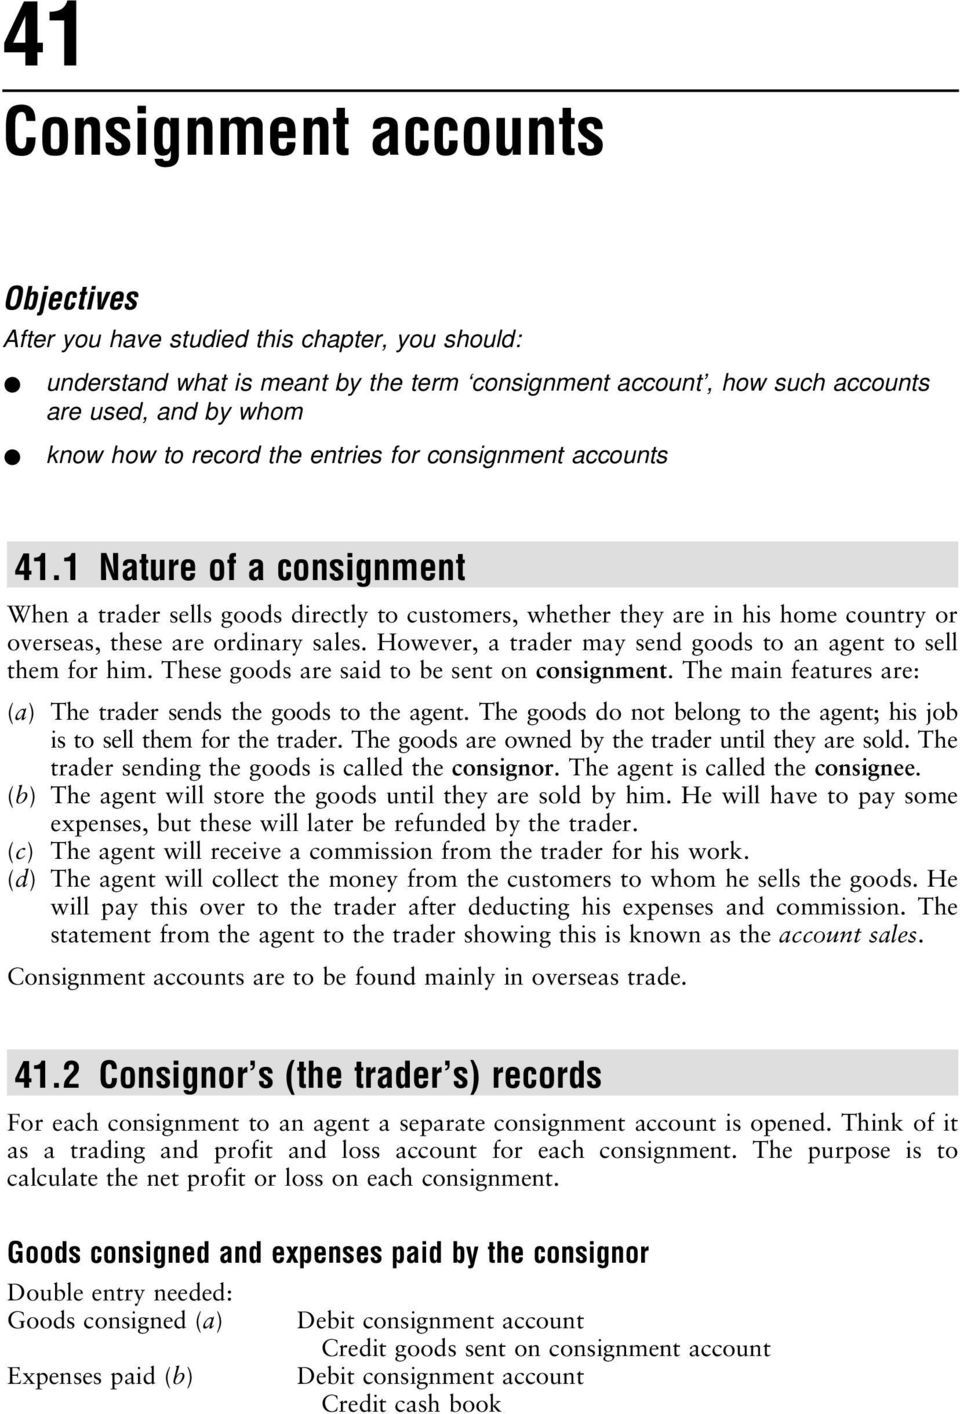 Consignment accounts pdf however a trader may send goods to an agent to sell them for him fandeluxe Image collections